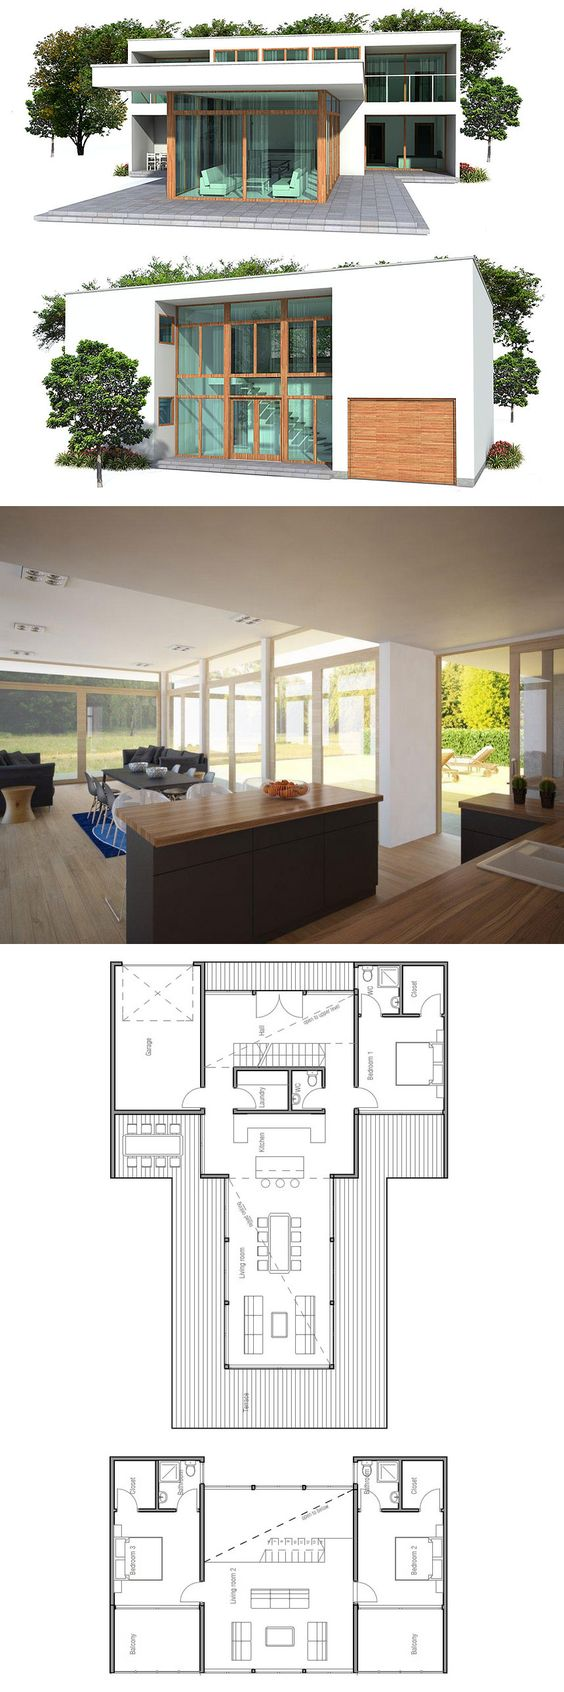 House Plans Bedrooms And House On Pinterest